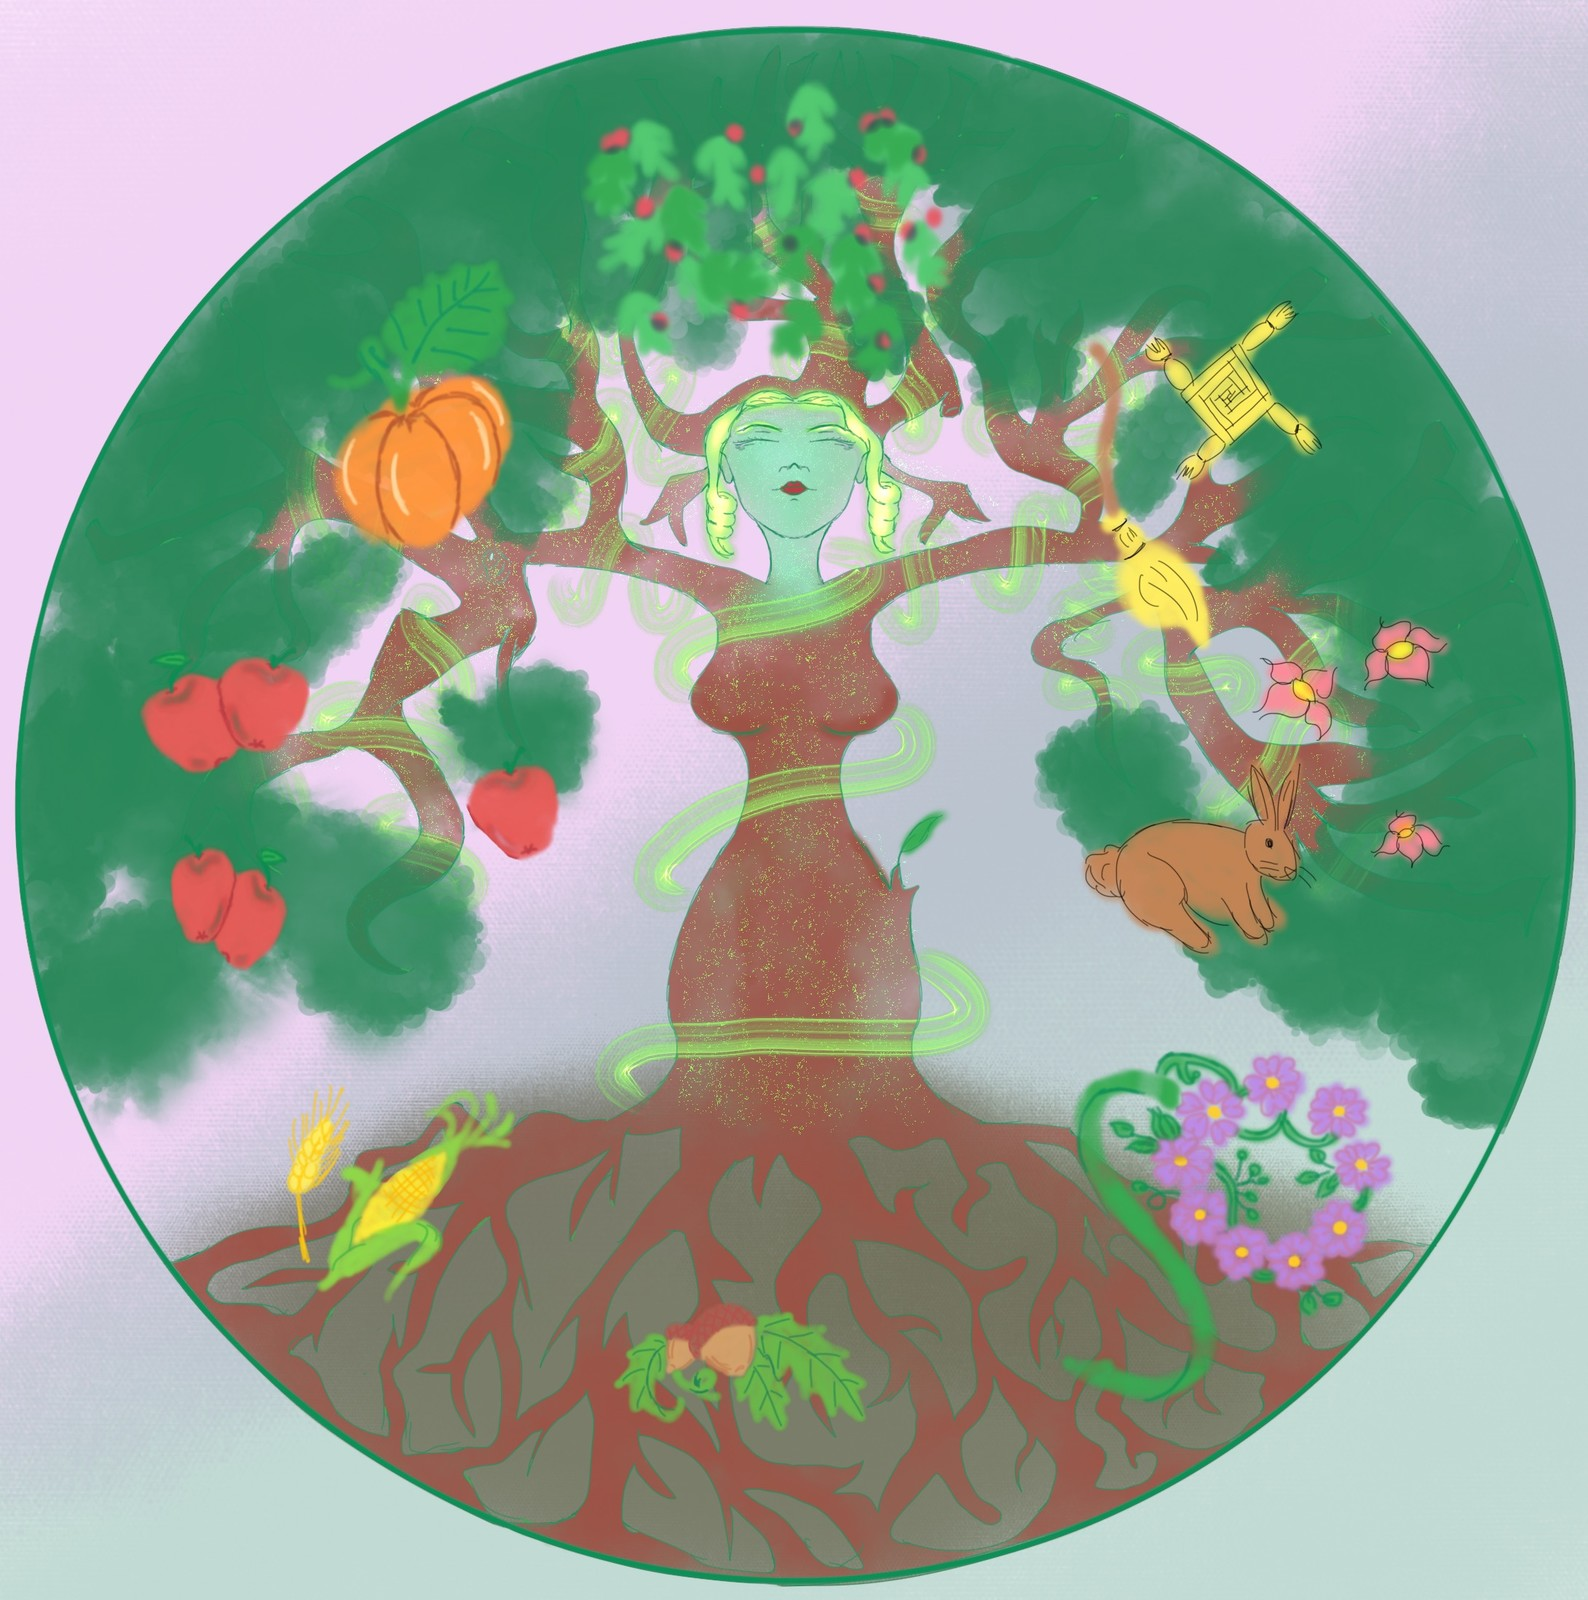 This is of the goddess of Wicca, in the shape of a Tree of Life and the Wheel of the Year around her.